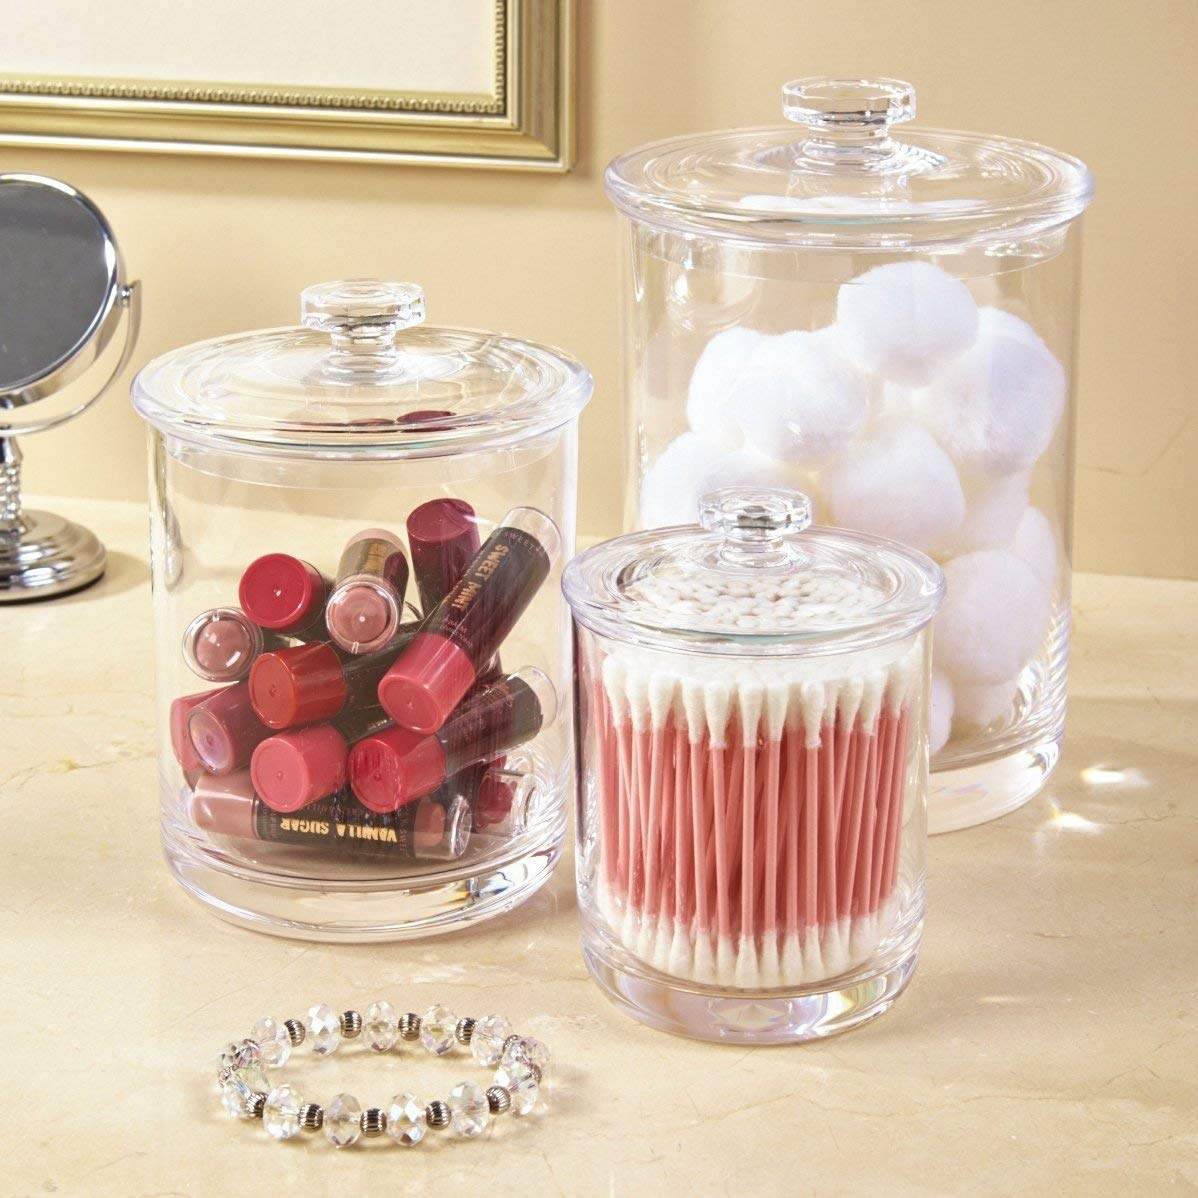 Three different sized jars holding cotton swabs, puffs, and other items